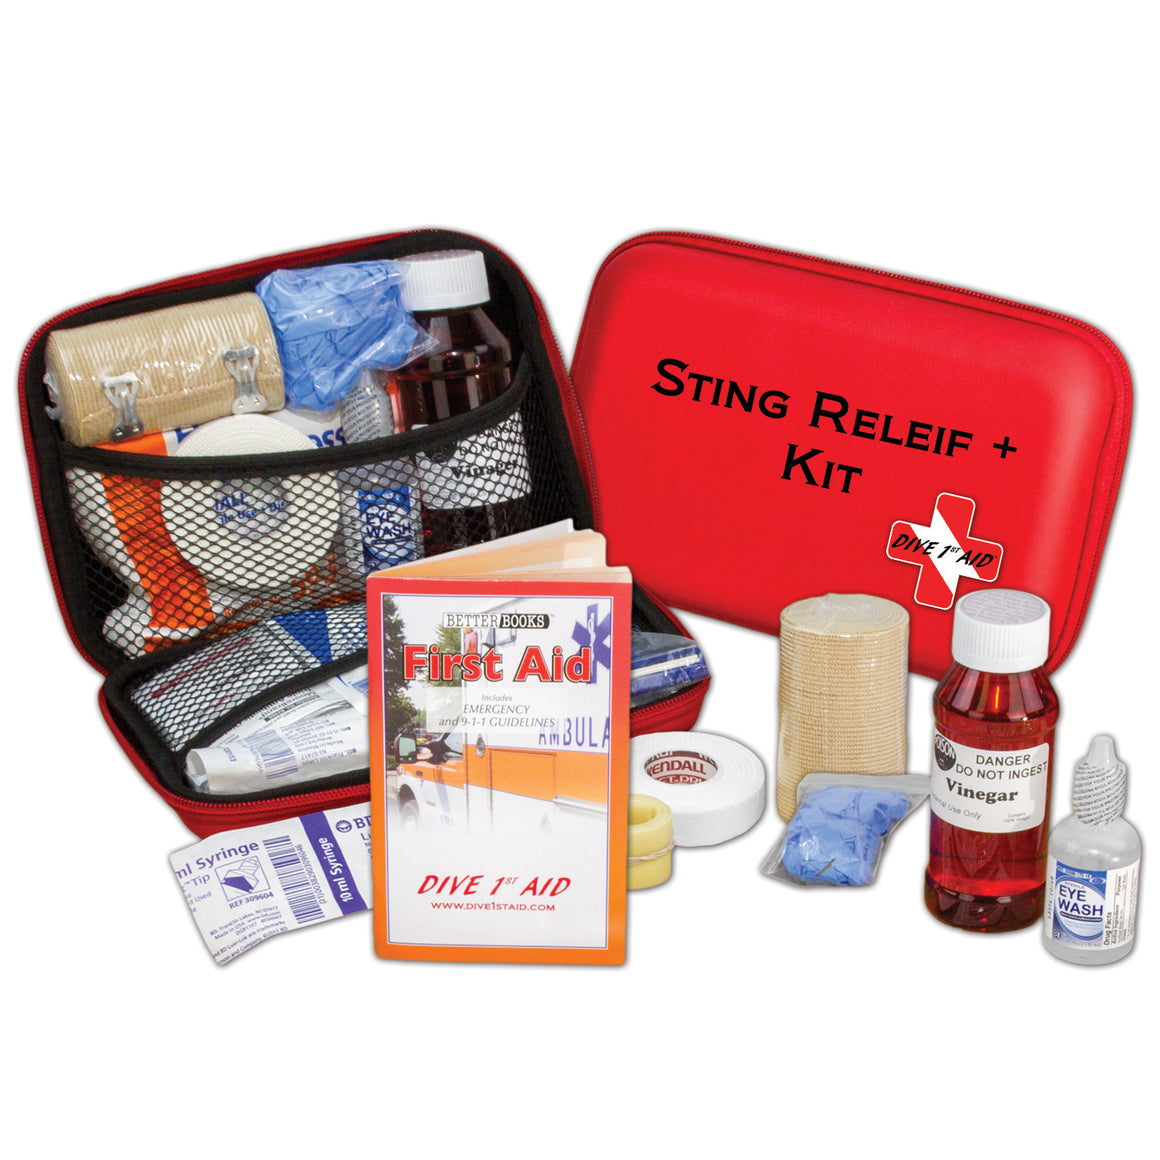 Sting Relief+ Kit